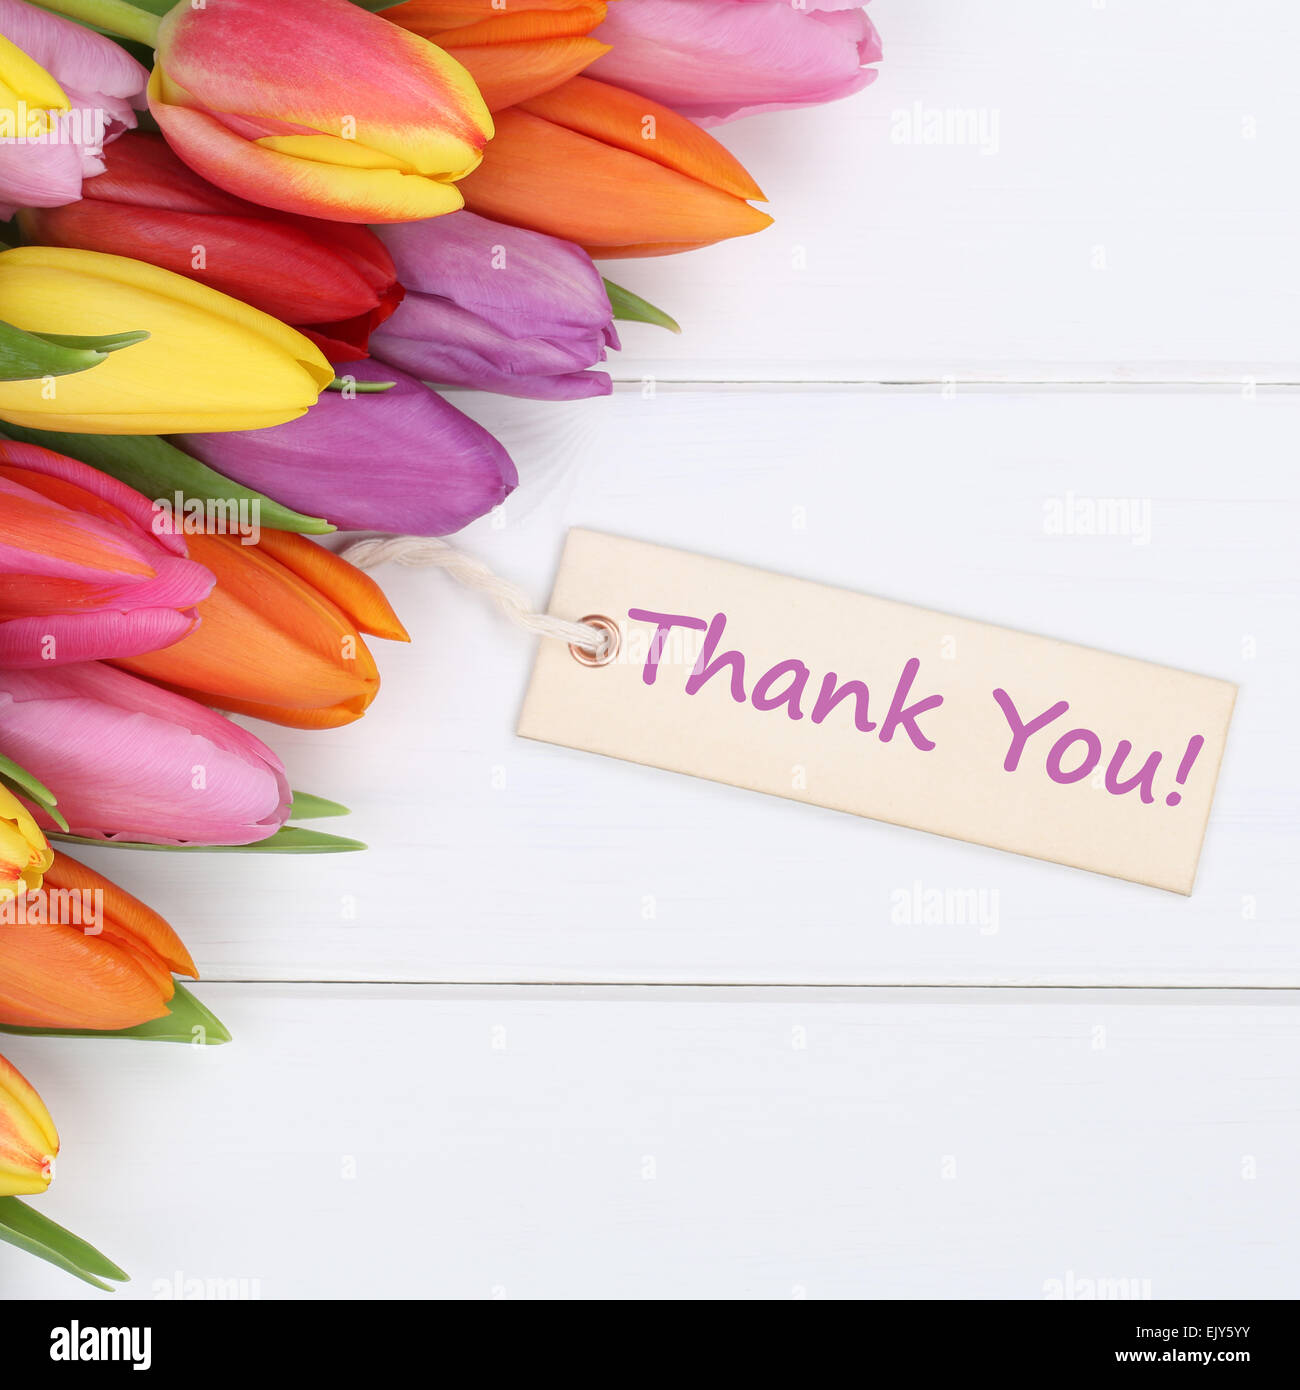 the words thank you with tulips flowers as a gift stock photo